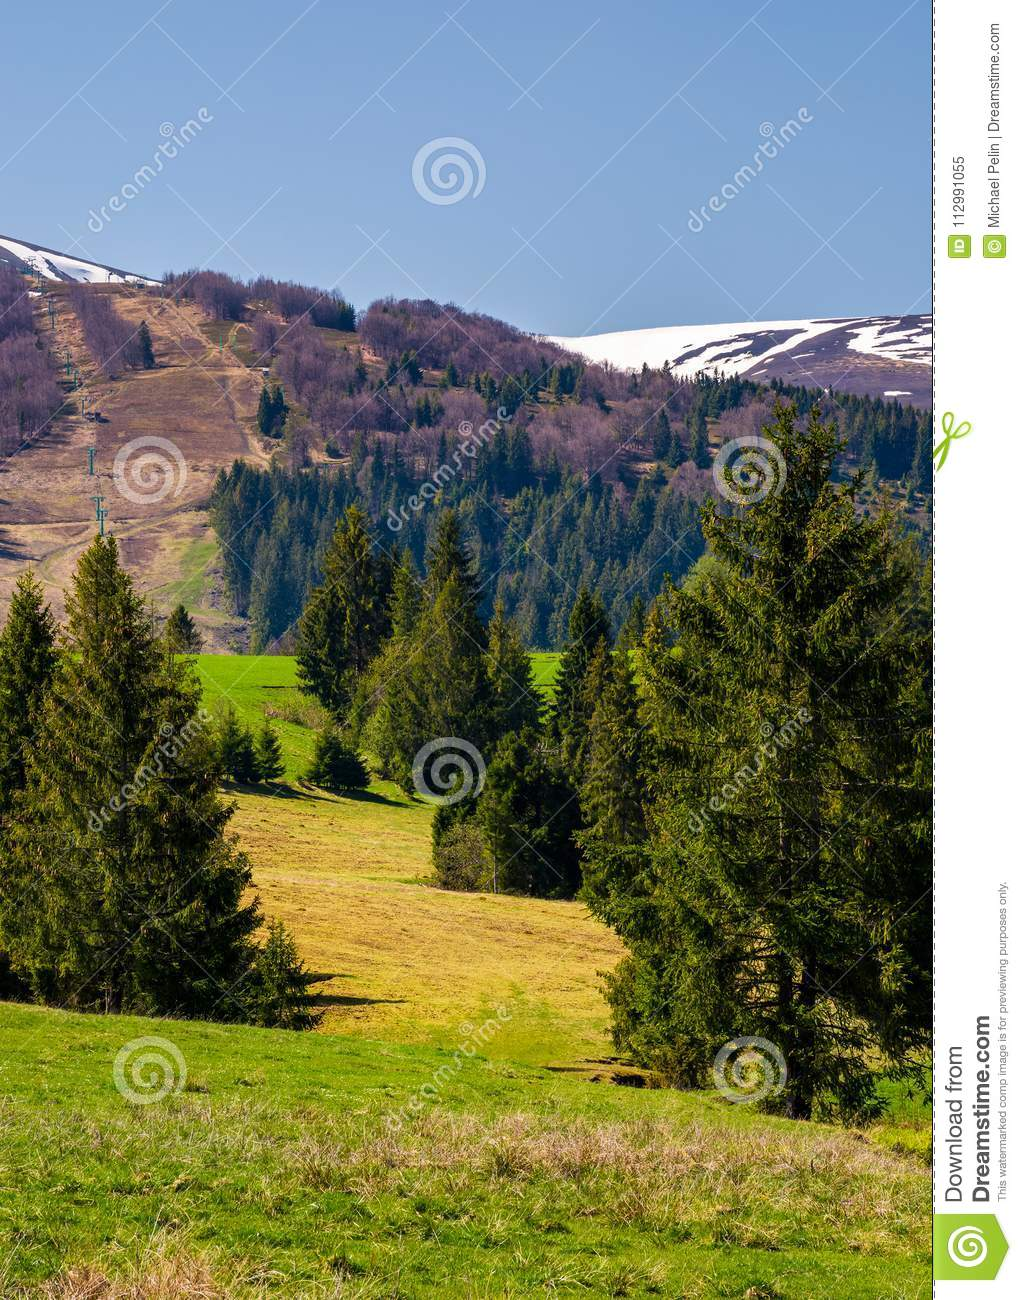 Spruce forest on the grassy hills in the valley